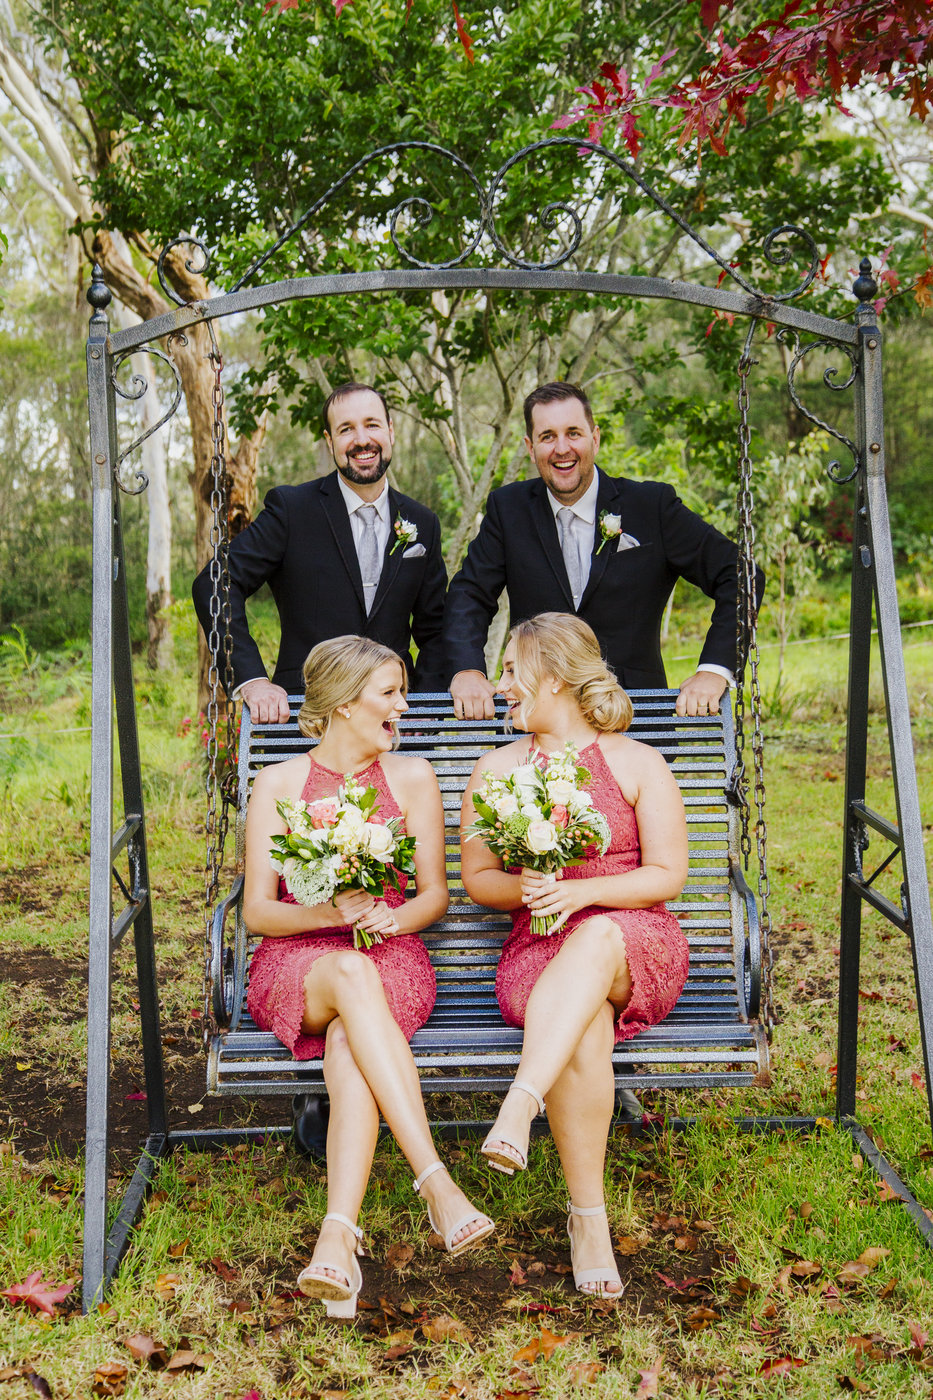 Wedding Photography bridal party on swing